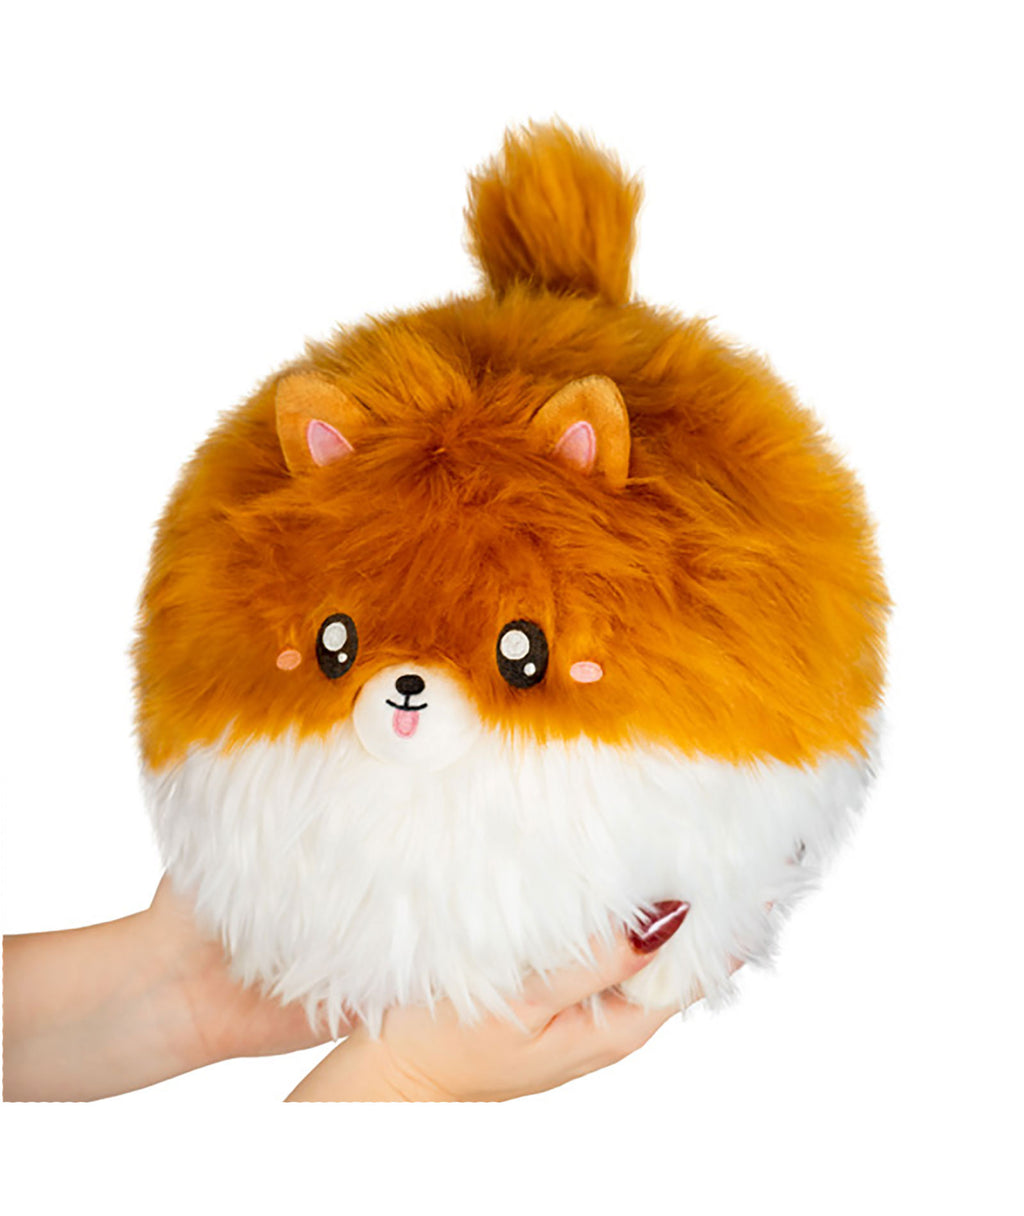 Mini Squishable Pomeranian